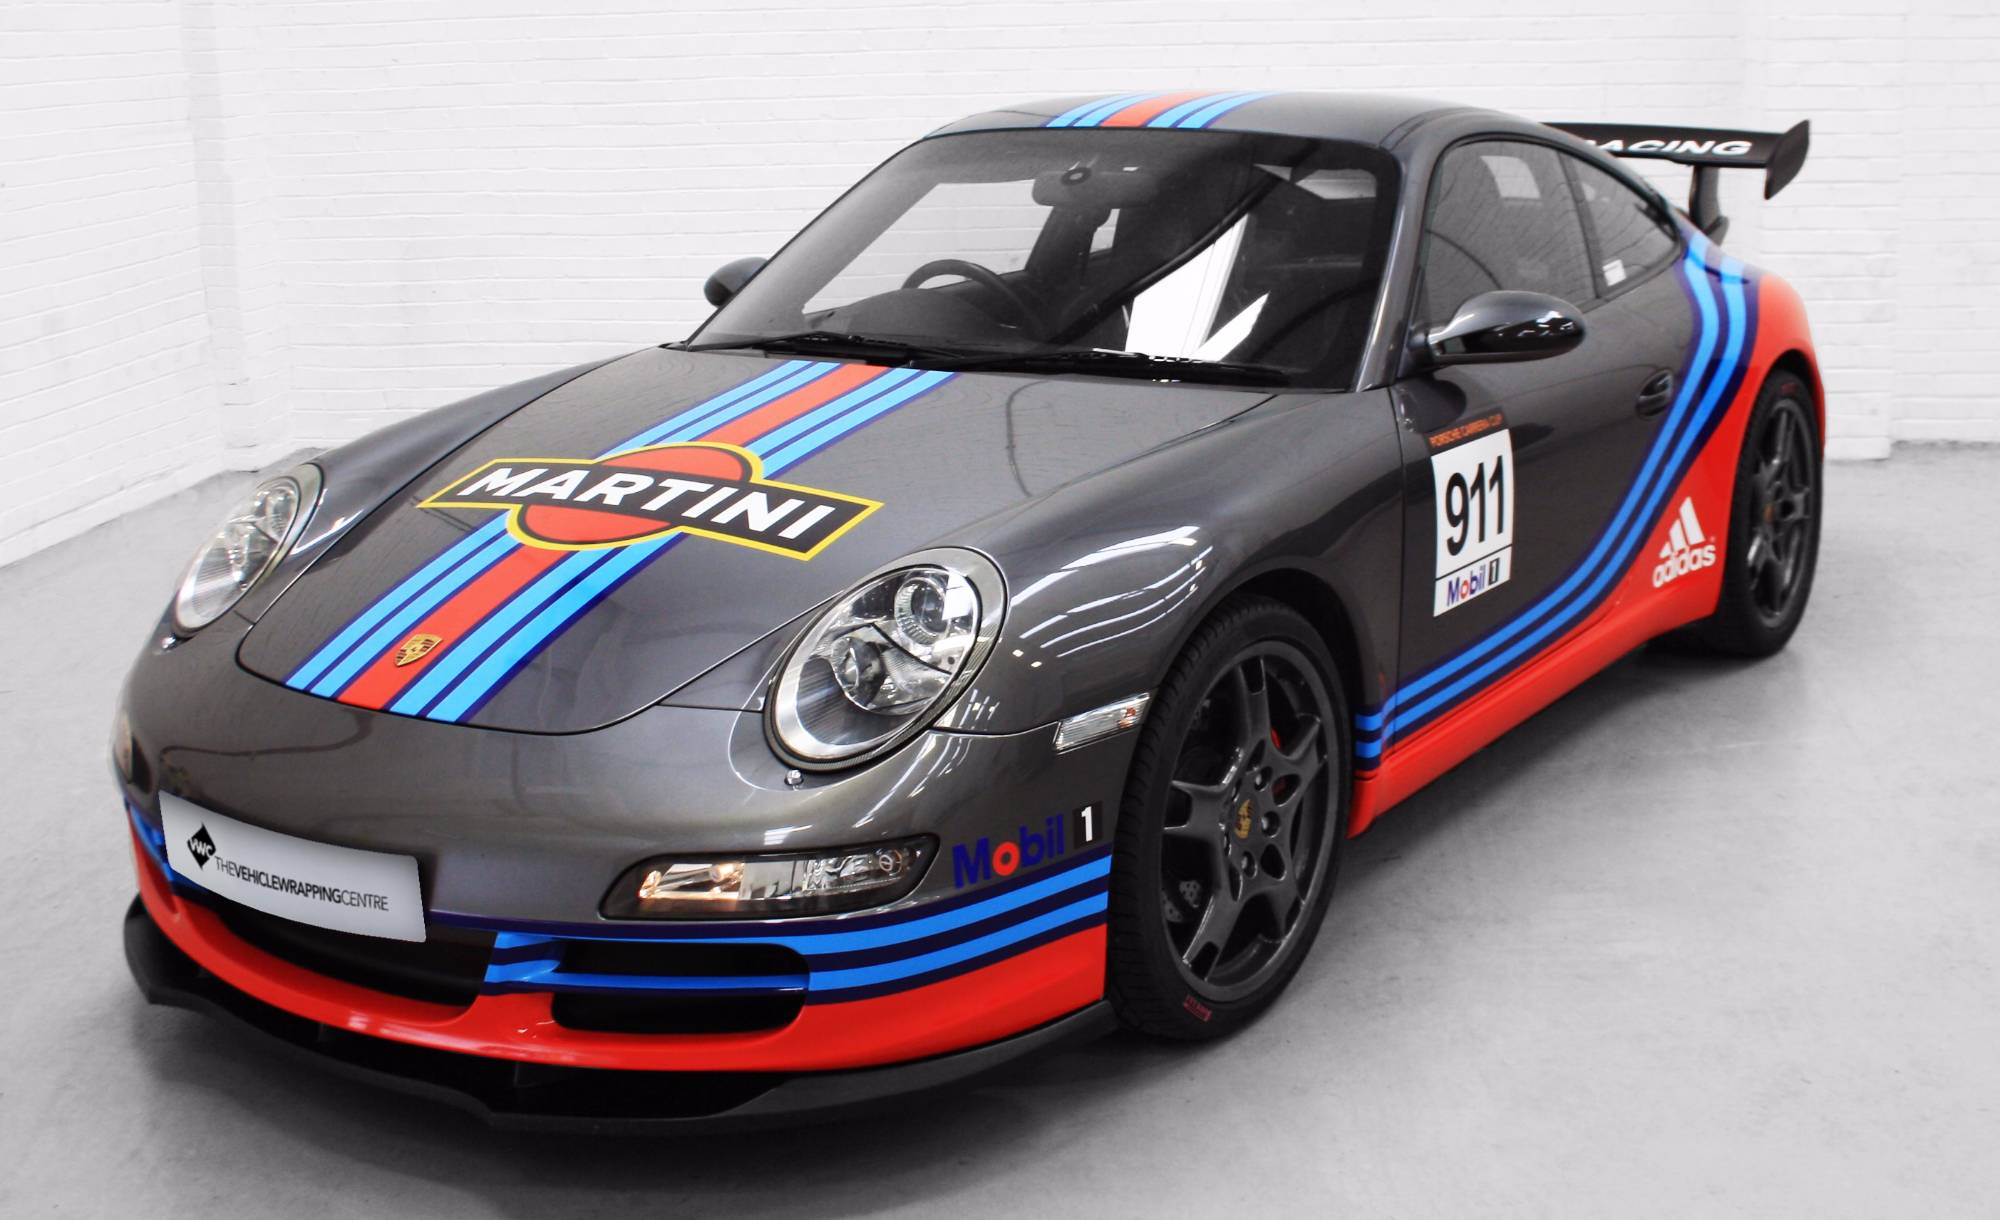 porsche 997 martini racing livery personal vehicle wrap. Black Bedroom Furniture Sets. Home Design Ideas